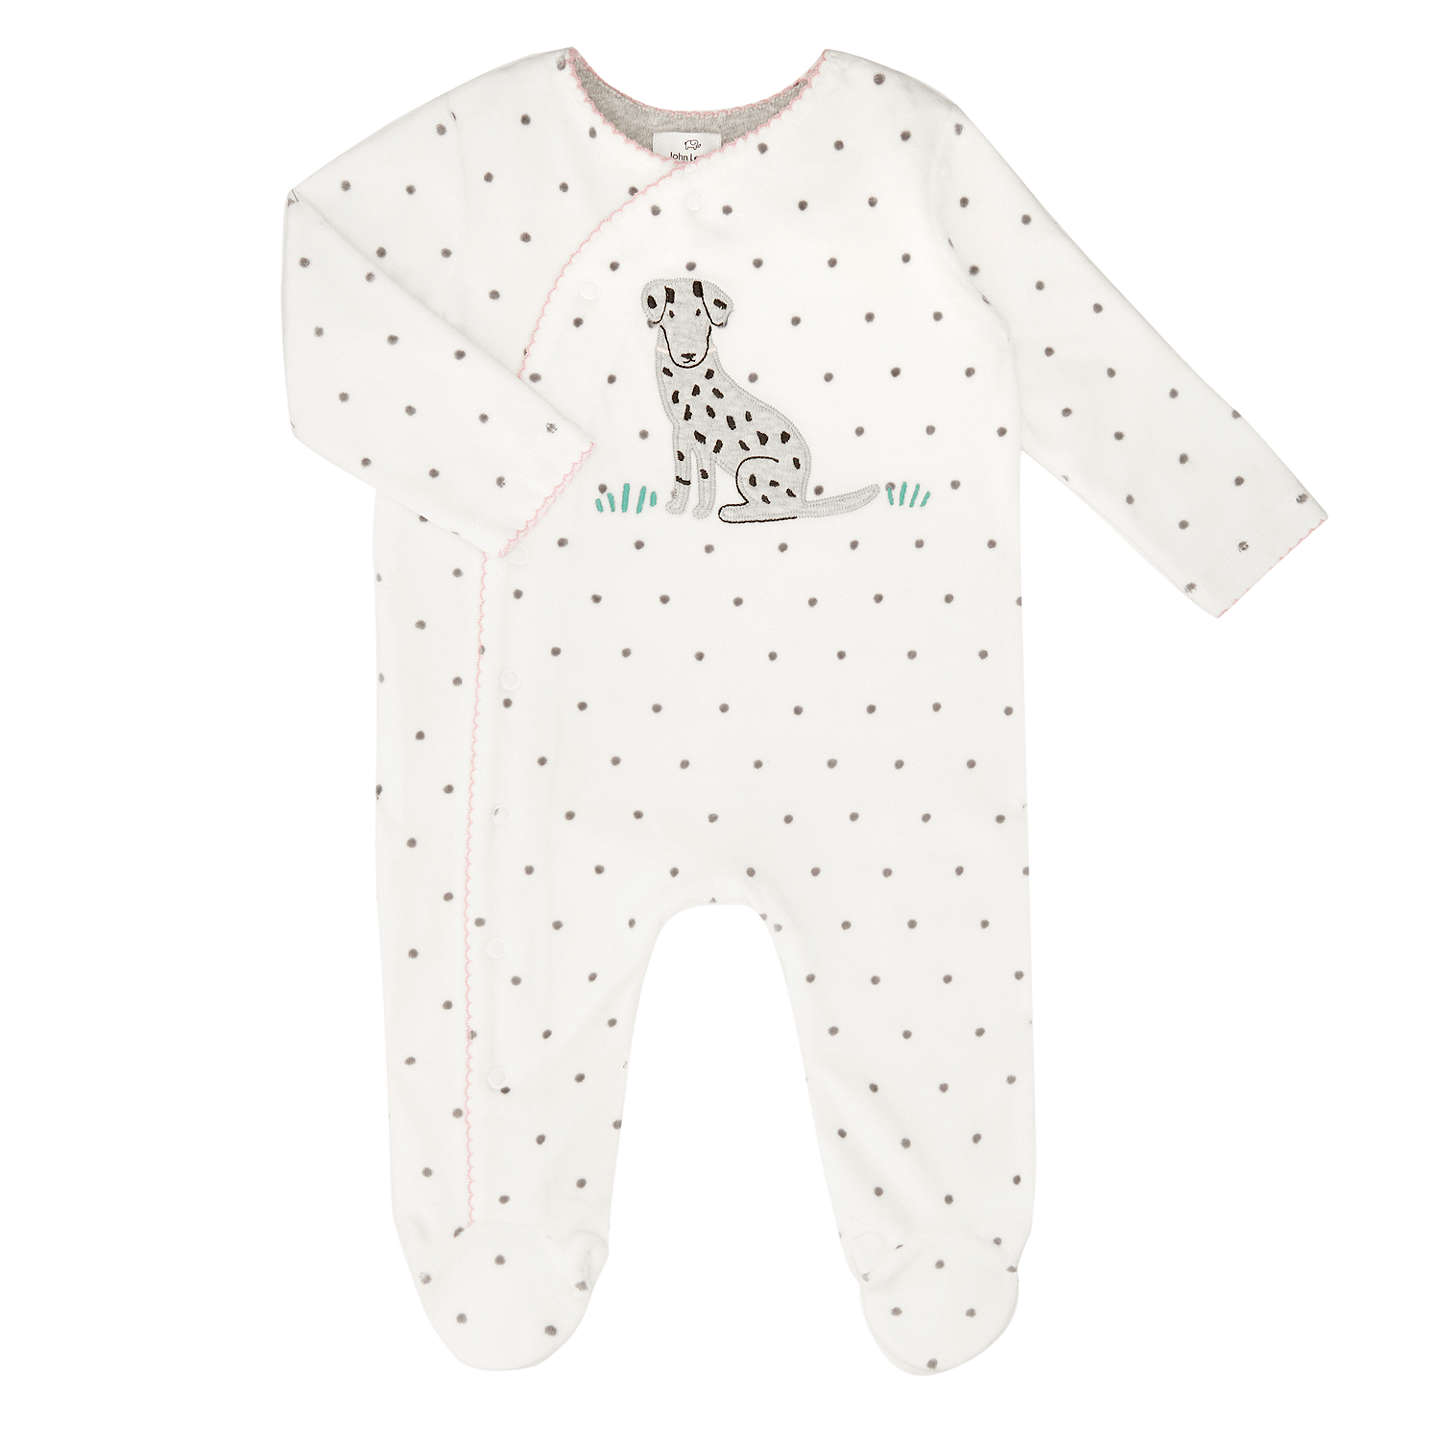 John Lewis Baby Velour Dalmatian Sleepsuit White Black at John Lewis